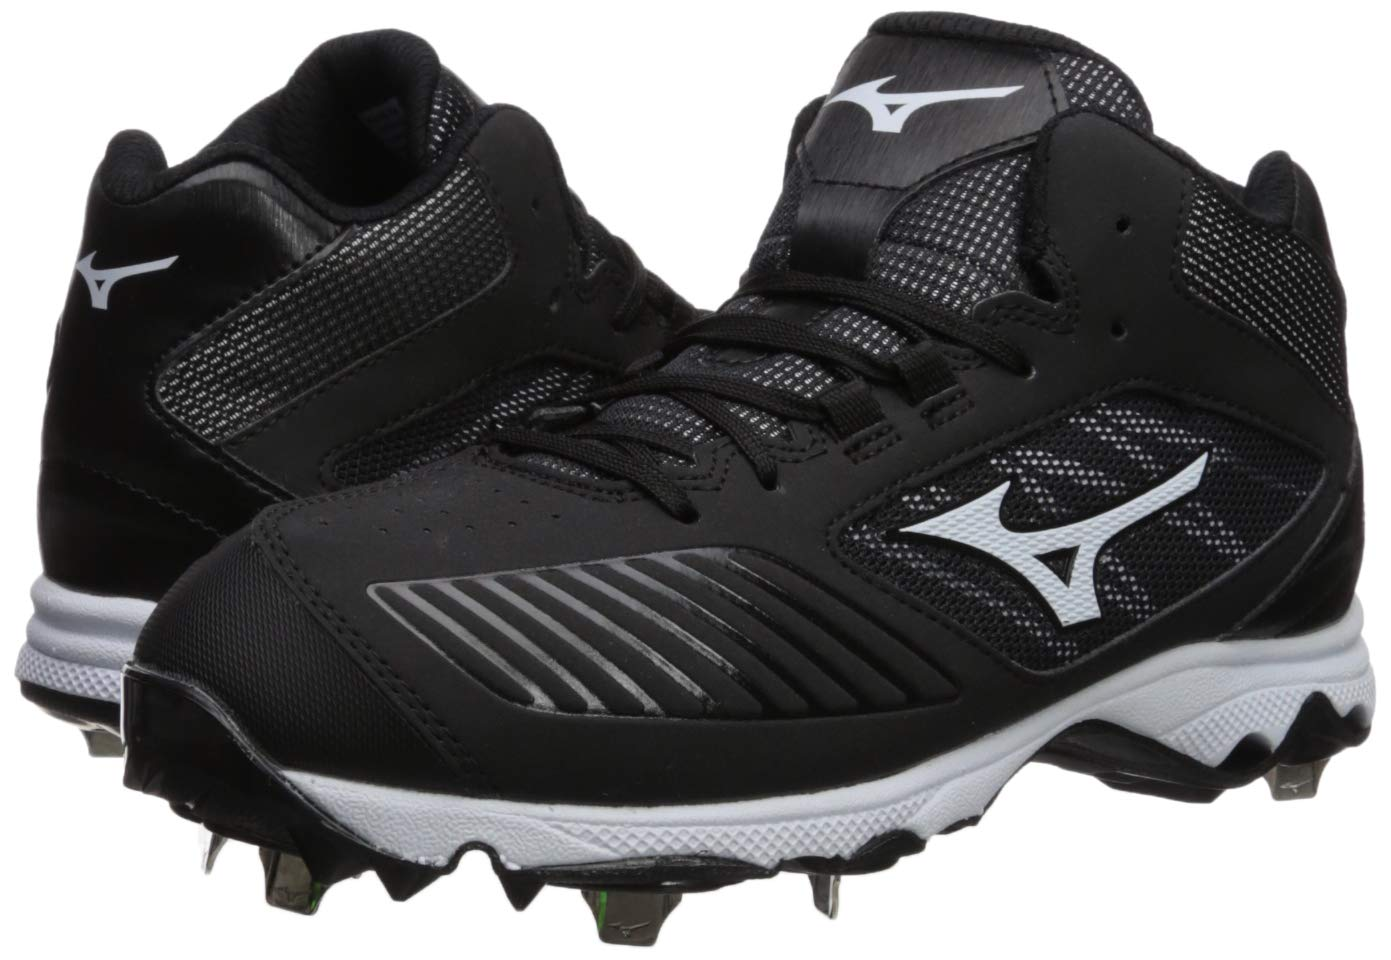 Mizuno Women's 9-Spike Advanced Sweep 4 Mid Metal Softball Cleat Shoe, Black/White 6 B US by Mizuno (Image #5)